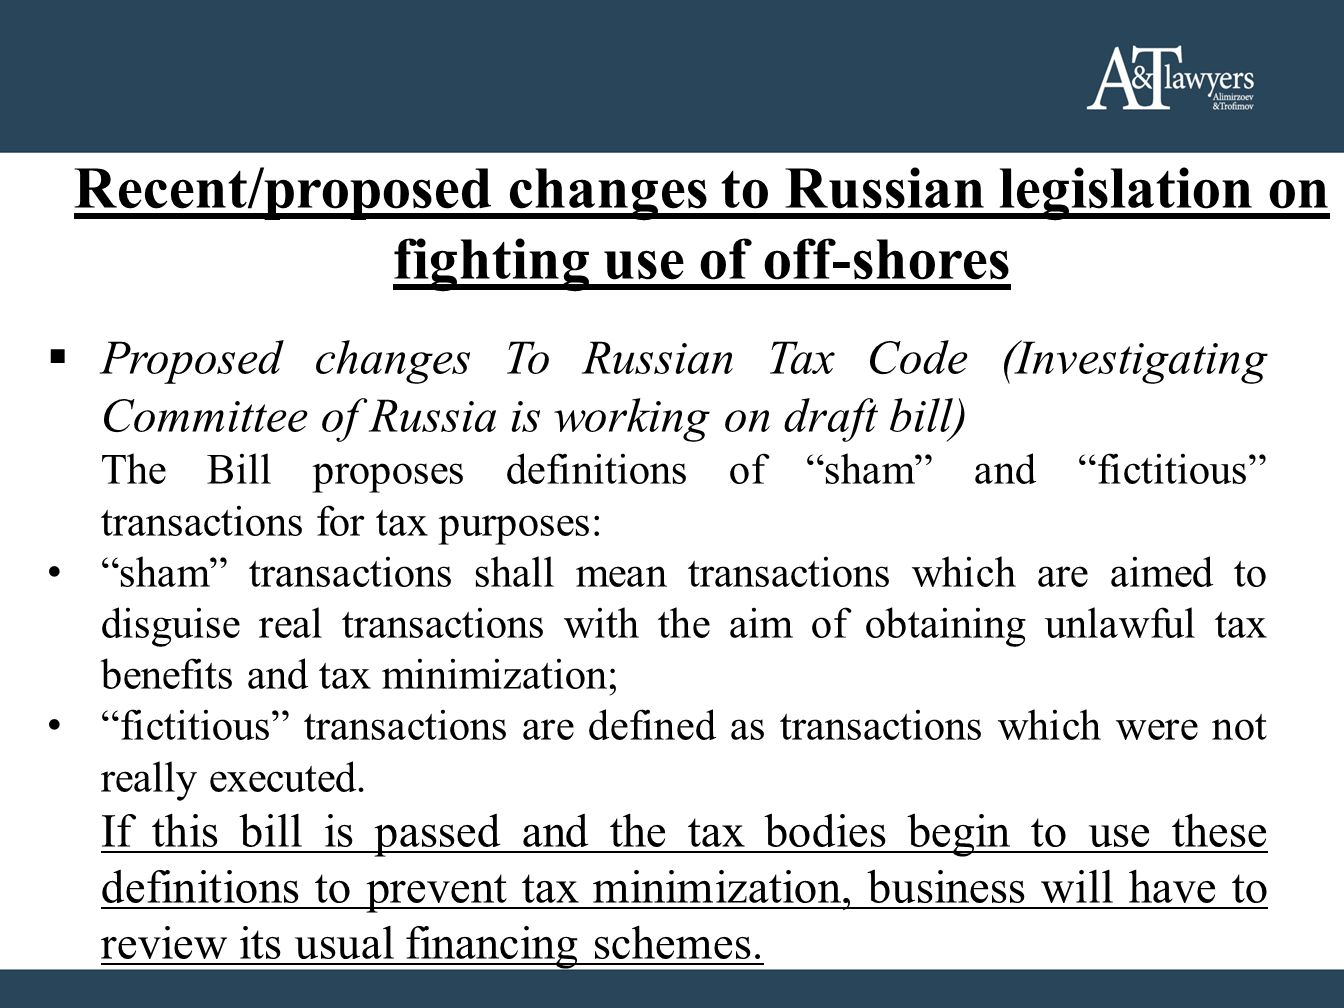 Recent/proposed changes to Russian legislation on fighting use of off-shores  Proposed changes To Russian Tax Code (Investigating Committee of Russia is working on draft bill) The Bill proposes definitions of sham and fictitious transactions for tax purposes: sham transactions shall mean transactions which are aimed to disguise real transactions with the aim of obtaining unlawful tax benefits and tax minimization; fictitious transactions are defined as transactions which were not really executed.